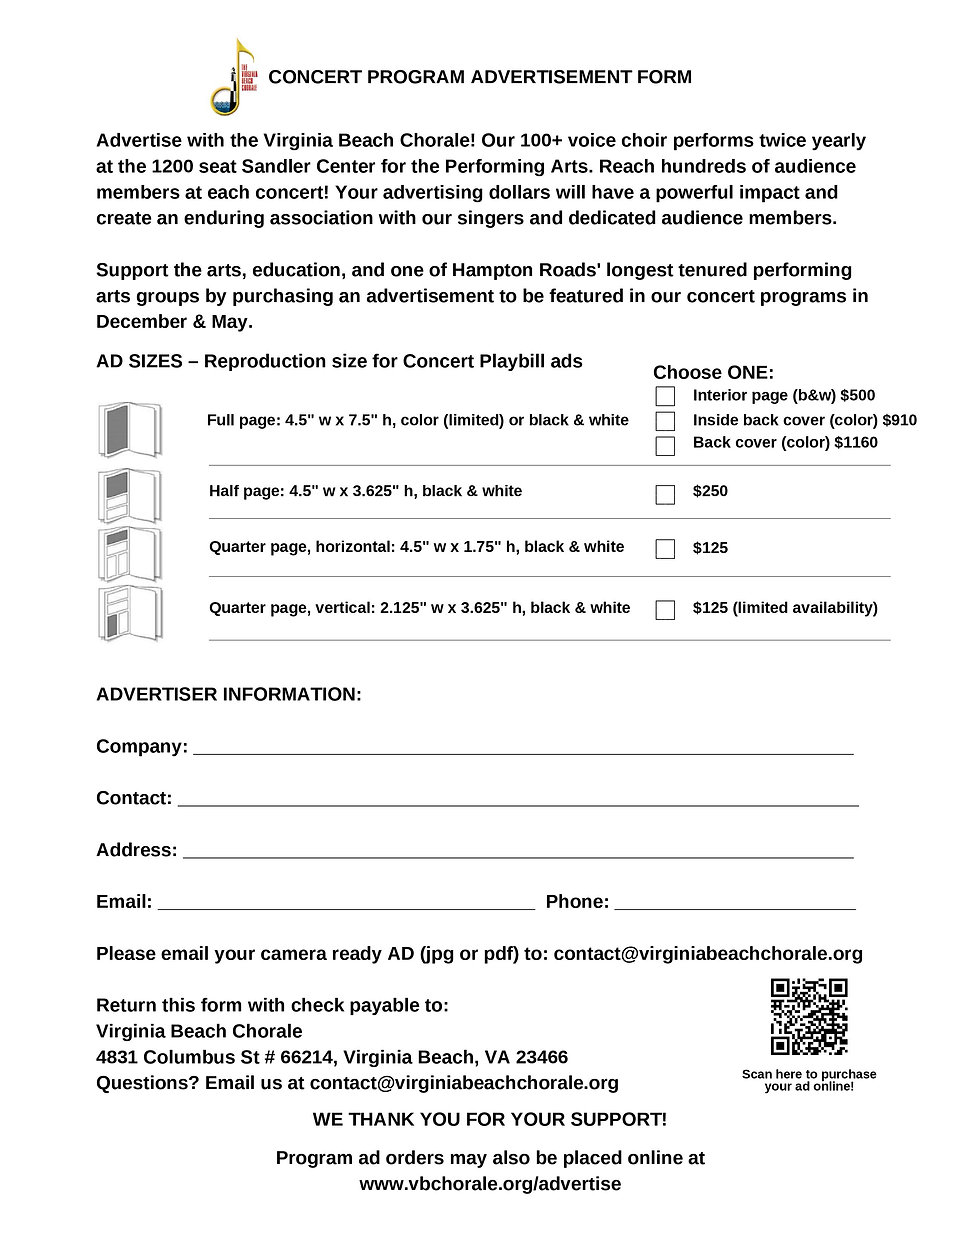 VBC Concert Program Advertisement Form-p